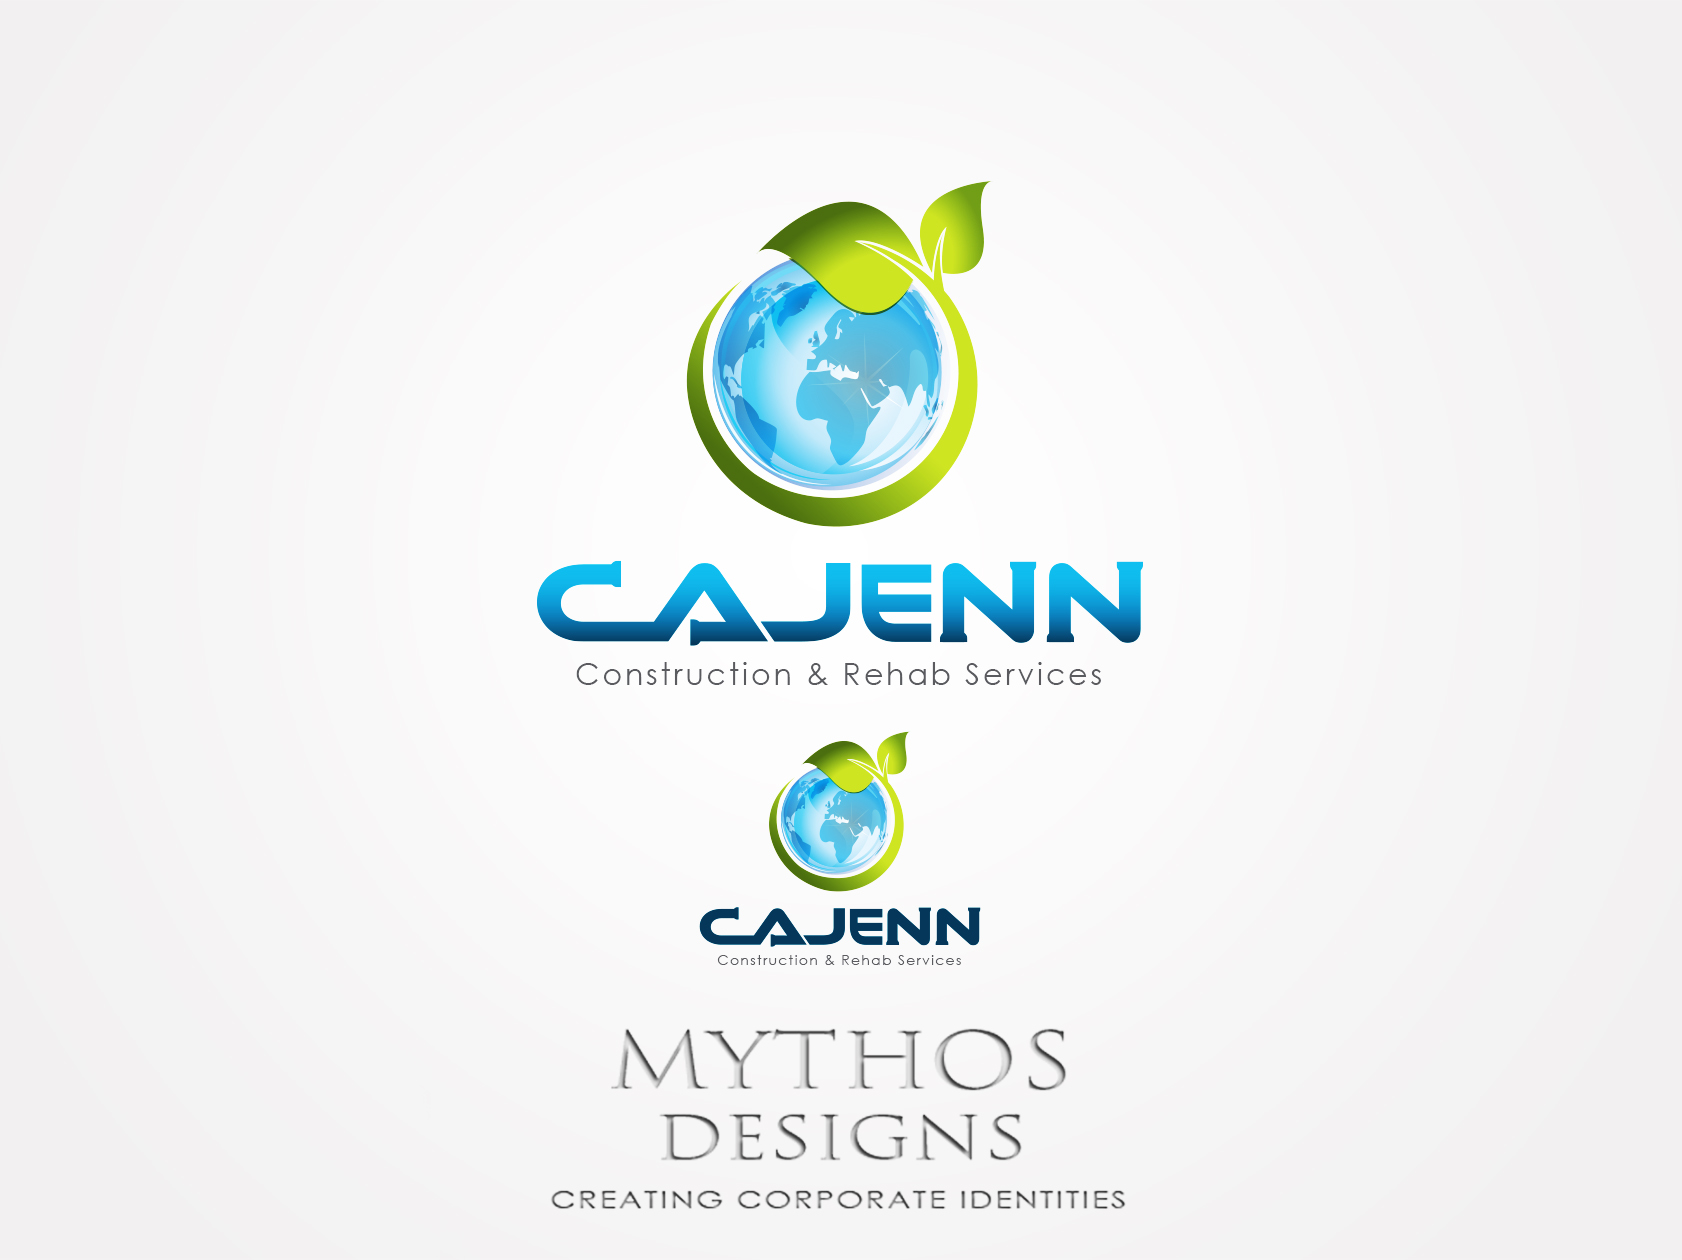 Logo Design by Mythos Designs - Entry No. 147 in the Logo Design Contest New Logo Design for CaJenn Construction & Rehab Services.